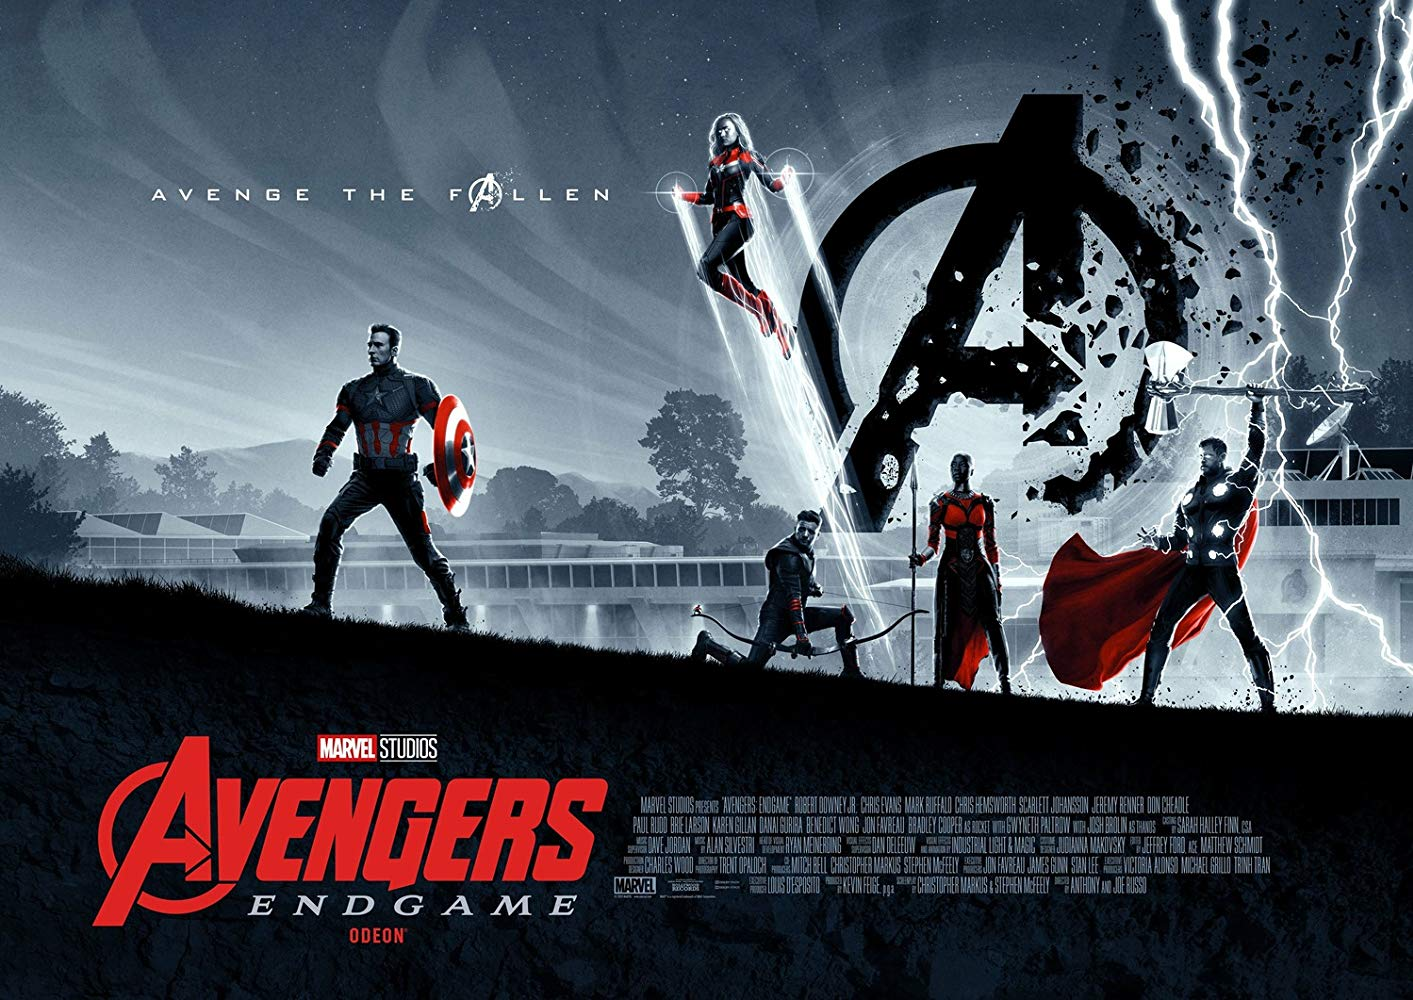 endgame - BREAKING: Avengers Endgame To Be RE-Released With Additional New Footage